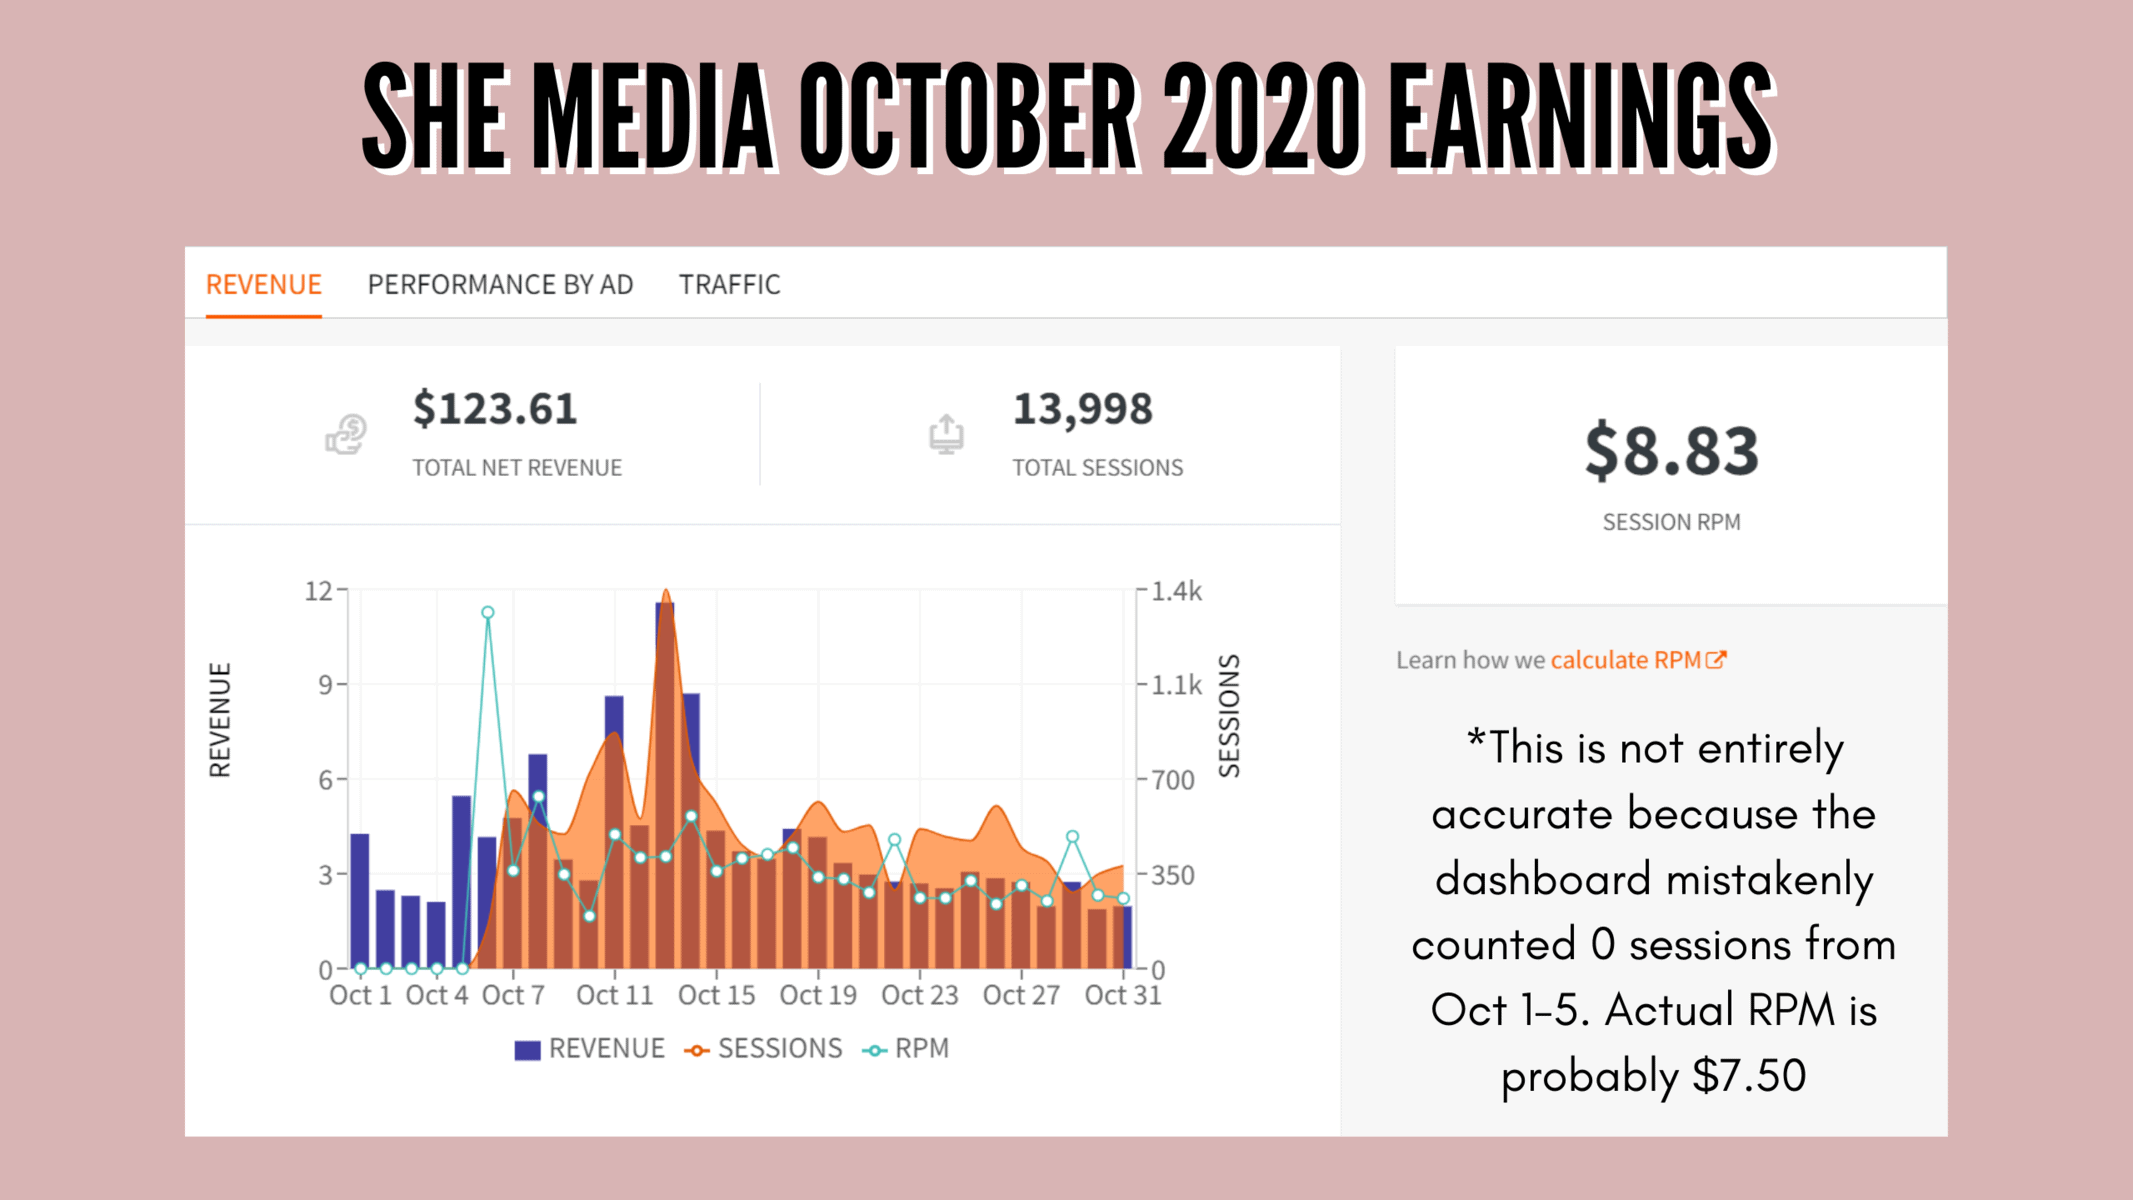 My October 2020 earnings with SHE Media - $124 with 14k sessions for an RPM of $8.87, though some sessions weren't accurately counted and my real RPM is probably $7.50